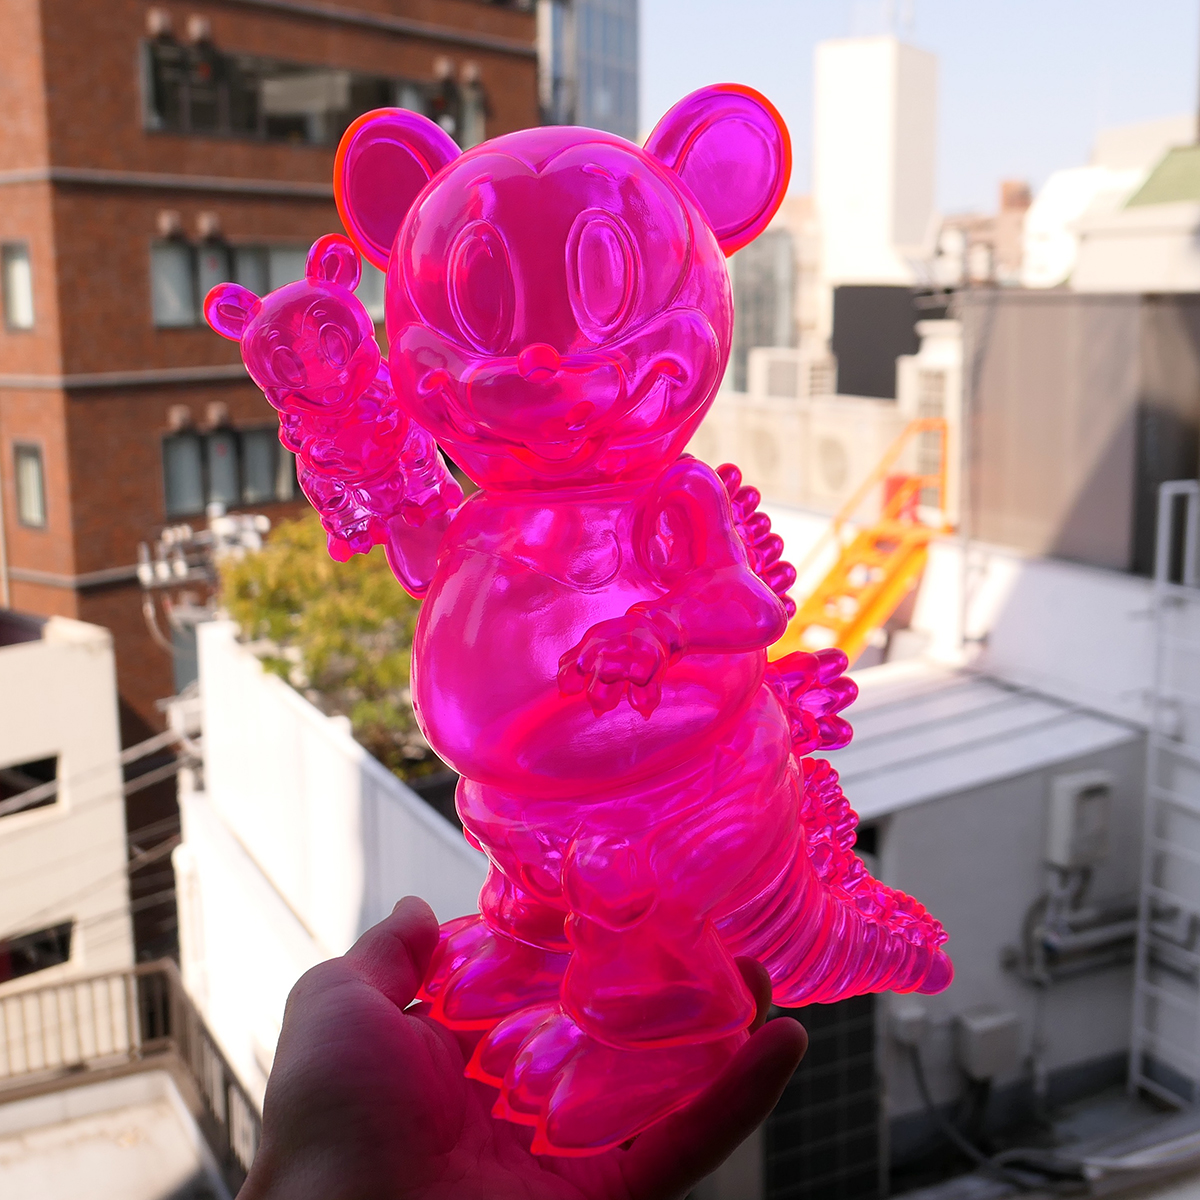 Ron English x BlackBook Toy( ロン・イングリッシュ) Mousezilla Clear Neon PK with mini